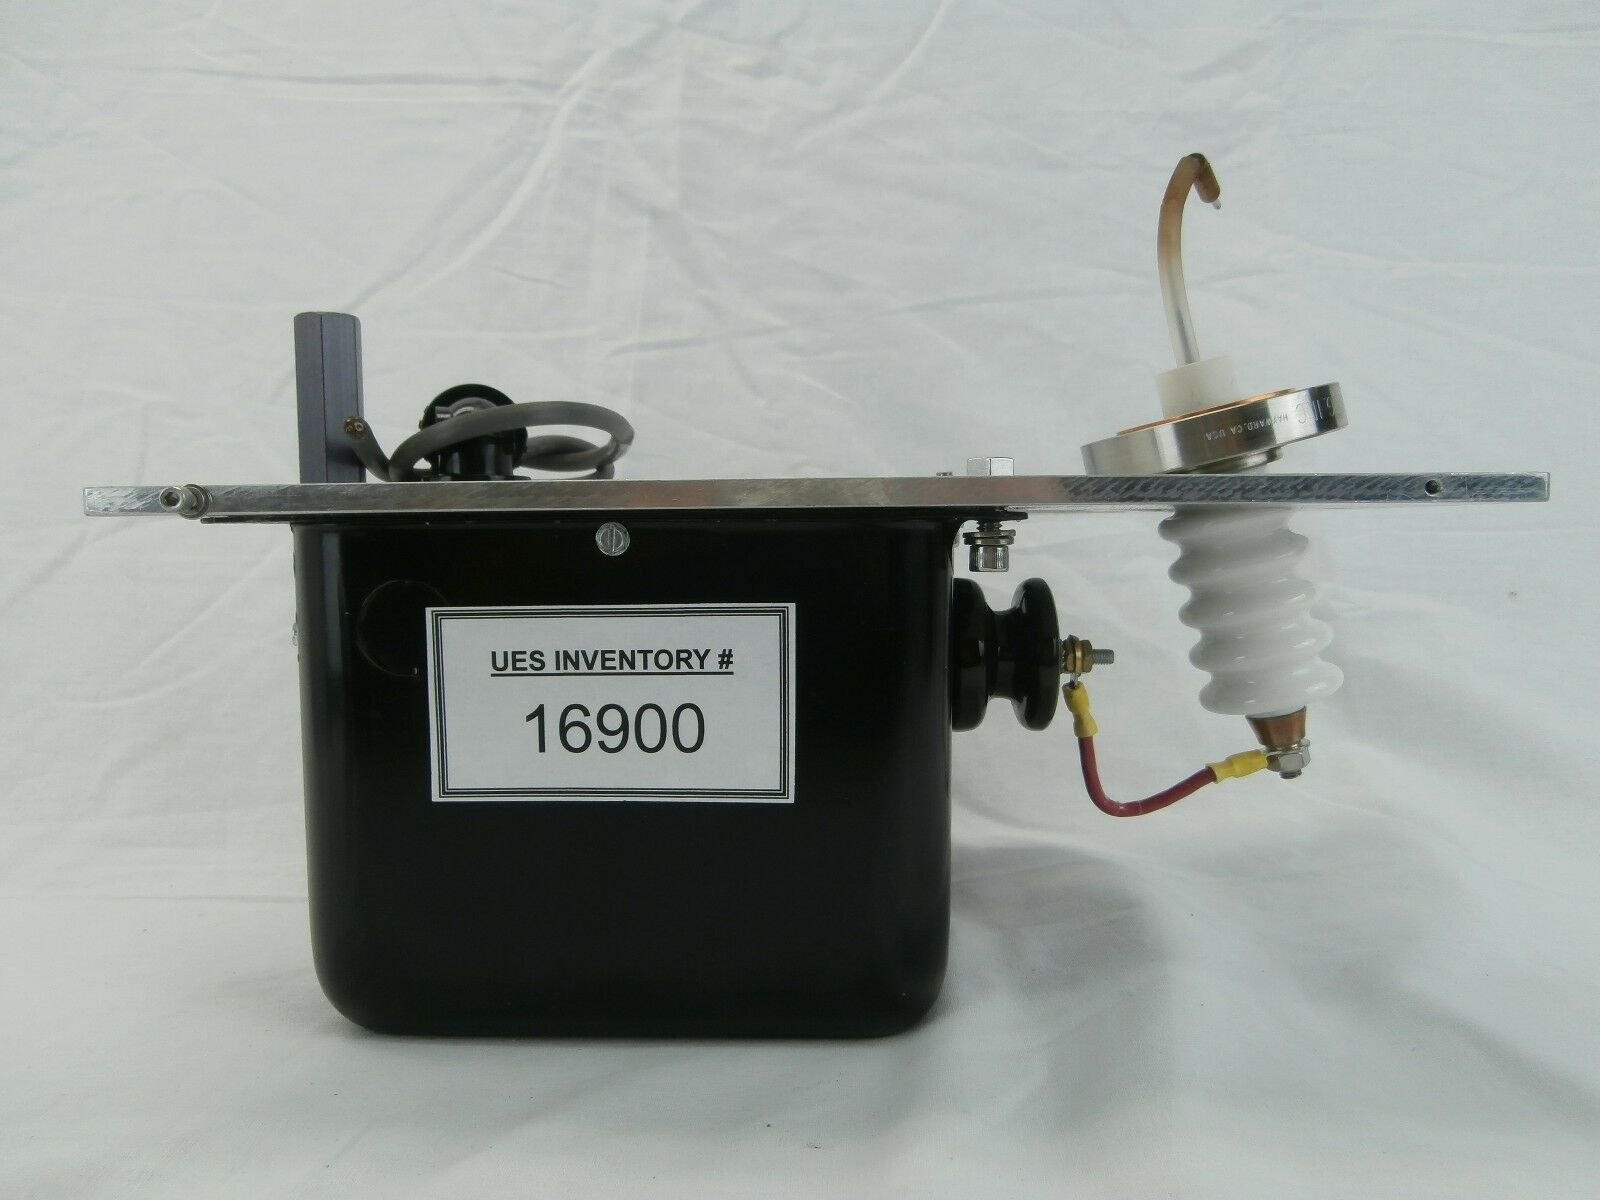 Ultratech Stepper Interchangeable Ignition Transformer 638-171 4700 Titan Used